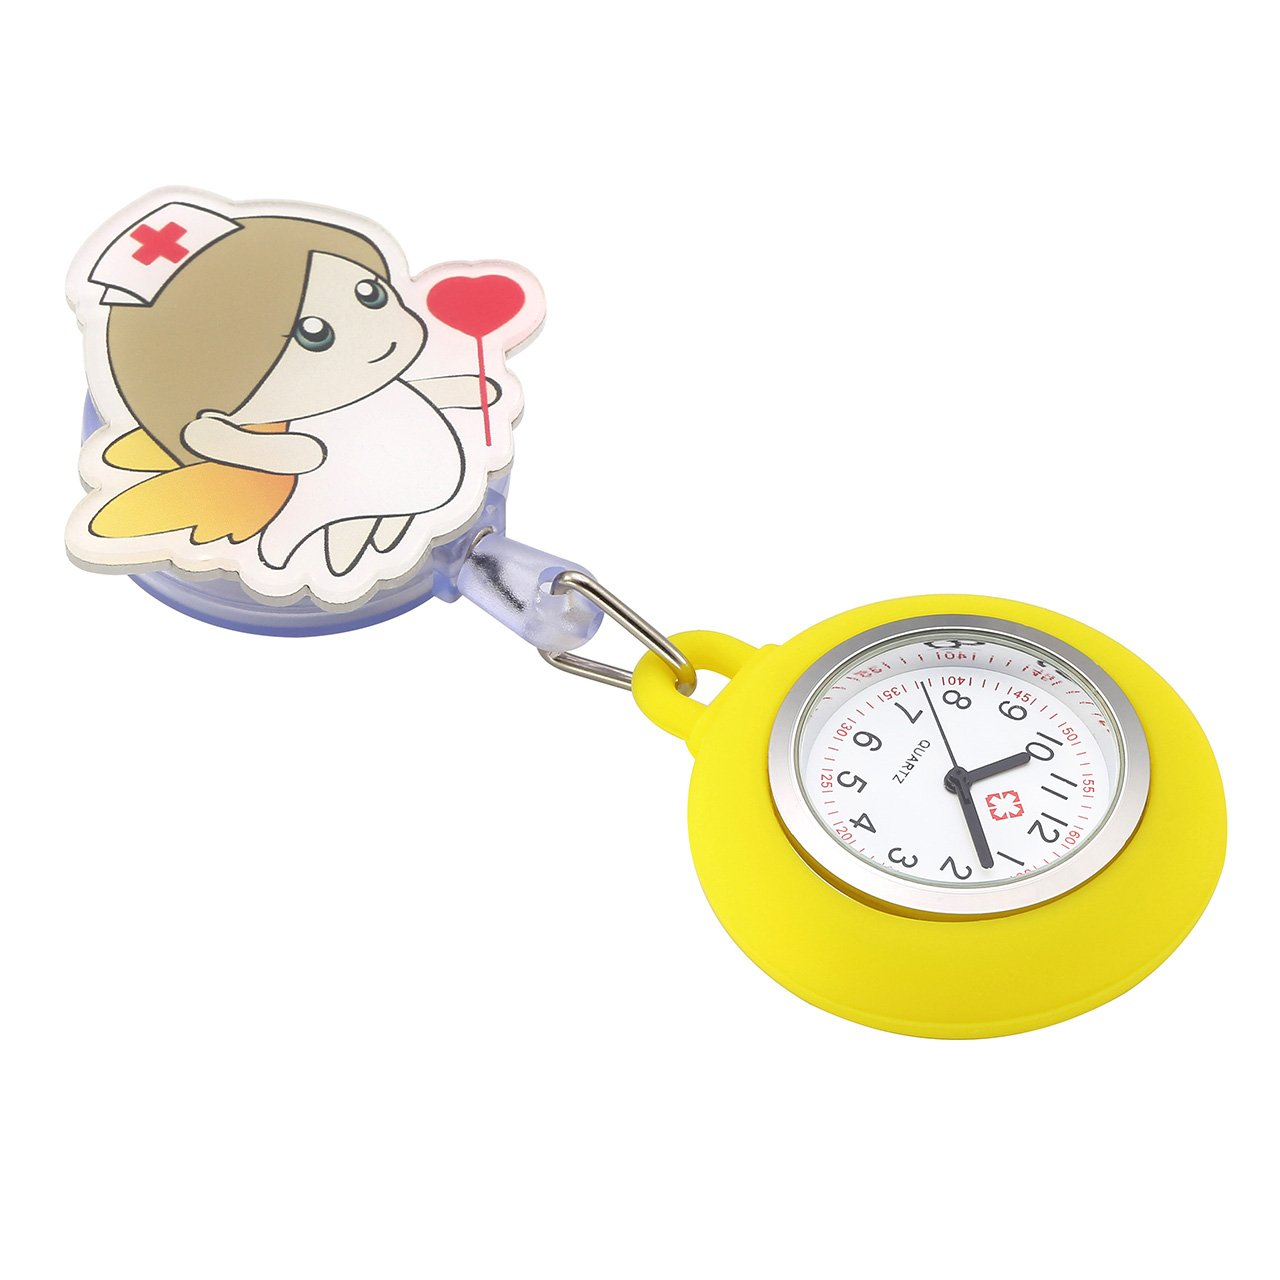 Top Plaza Girls' Kid's Cute Lovely Cartoon Angel Silicone Nurse Clip-on Fob Brooch Hanging Easy Pull Clasp Stretch Analog Quartz Pocket Watches,Set of 3#2 by Top Plaza (Image #5)